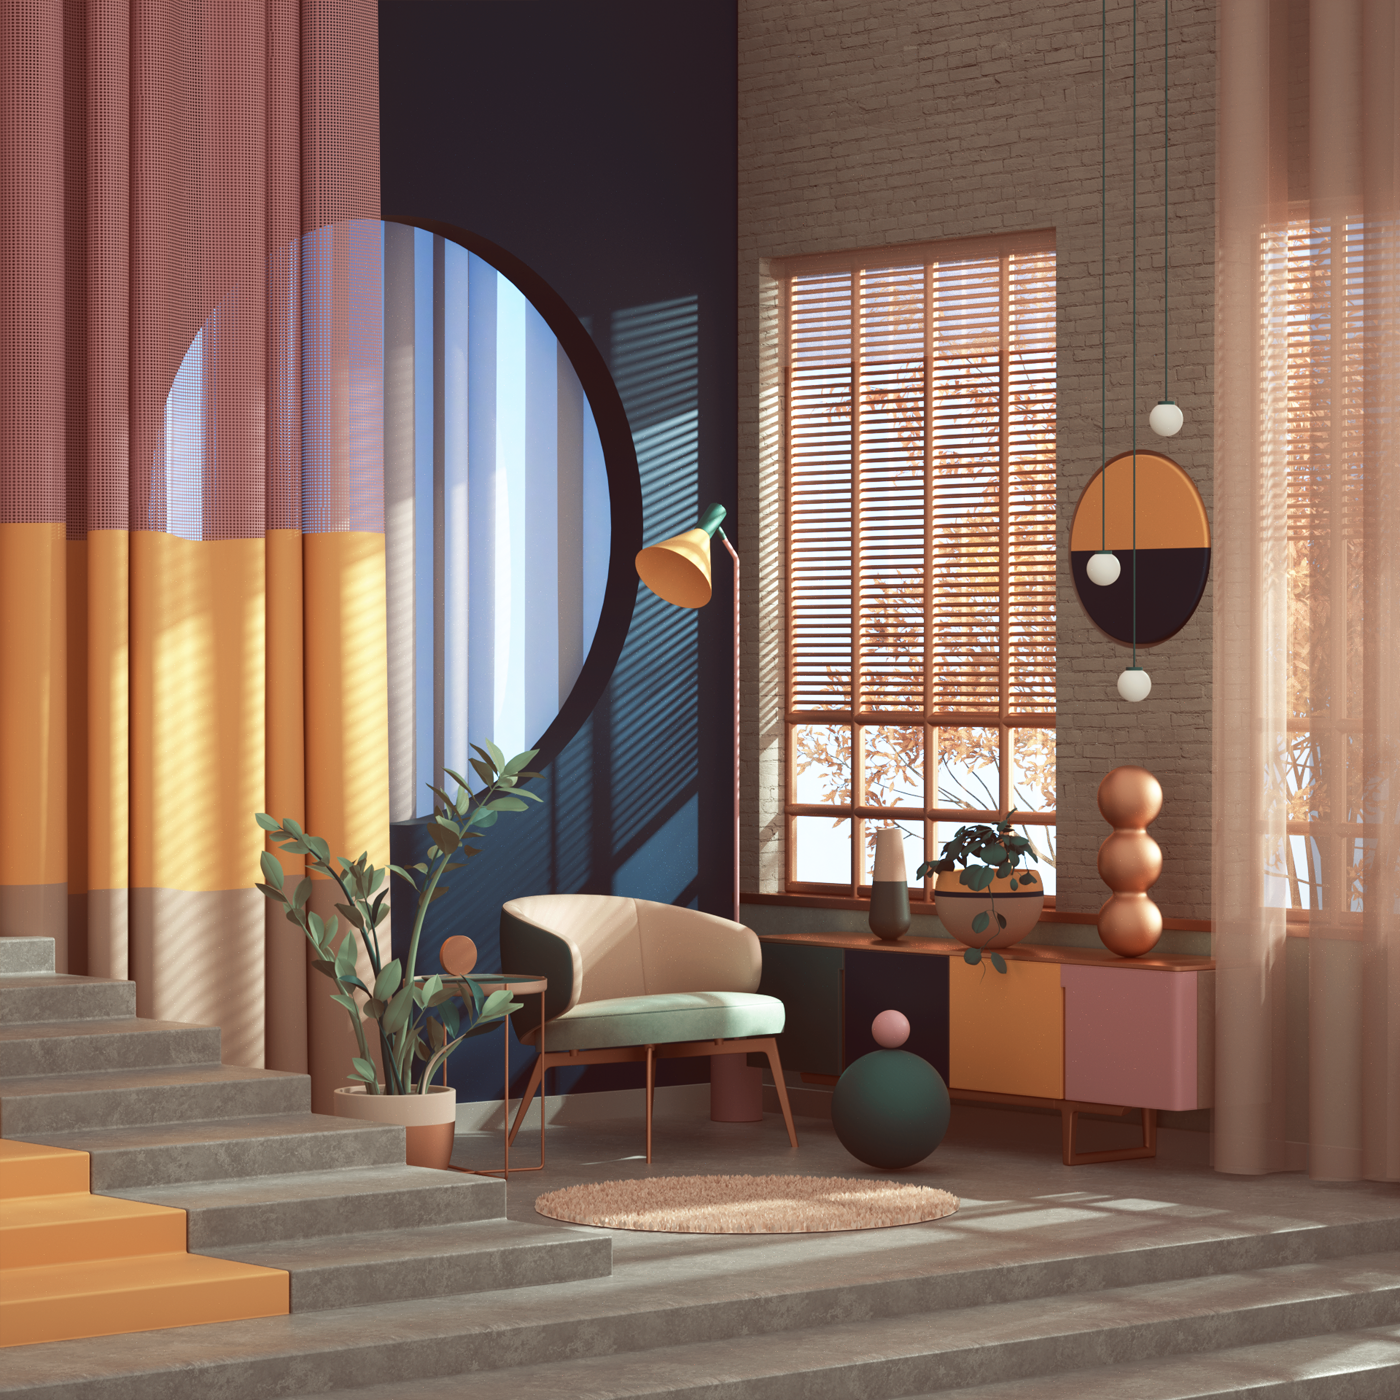 Architectural Explorations in 3D - Mindsparkle Mag